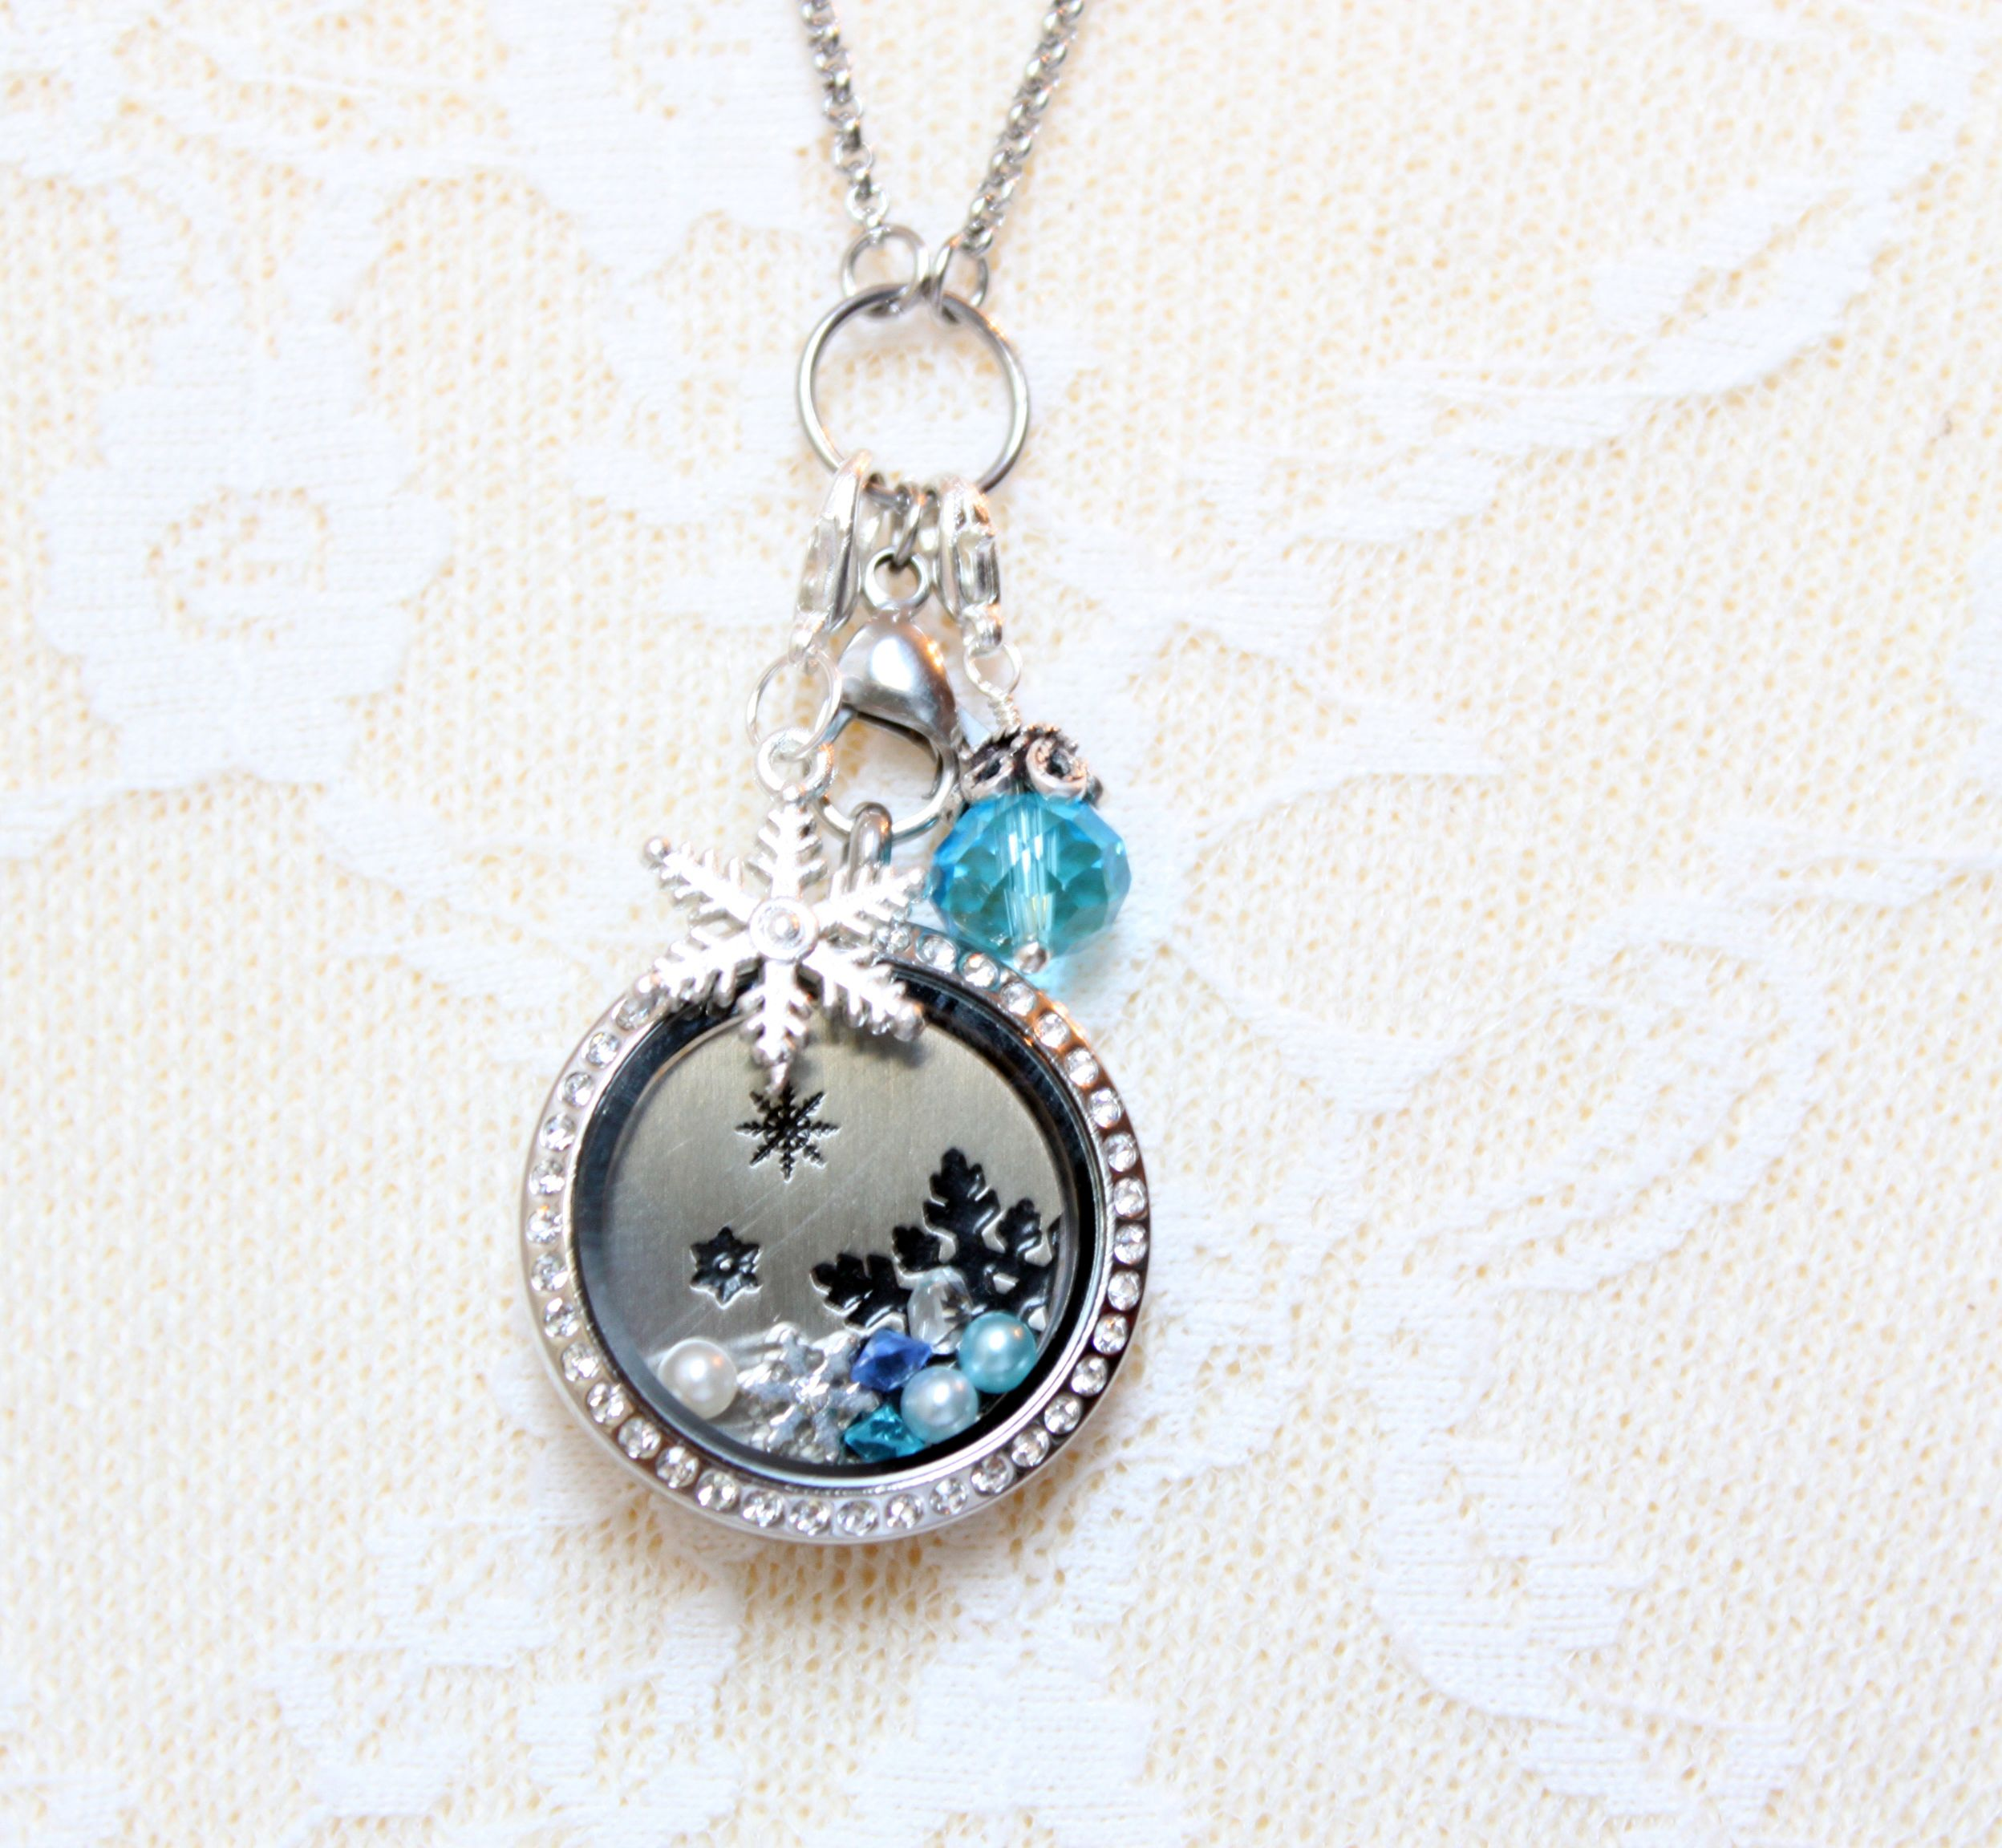 necklace locket mom stainless for lockets memory products steel gift grandma teardrop personalized or floating